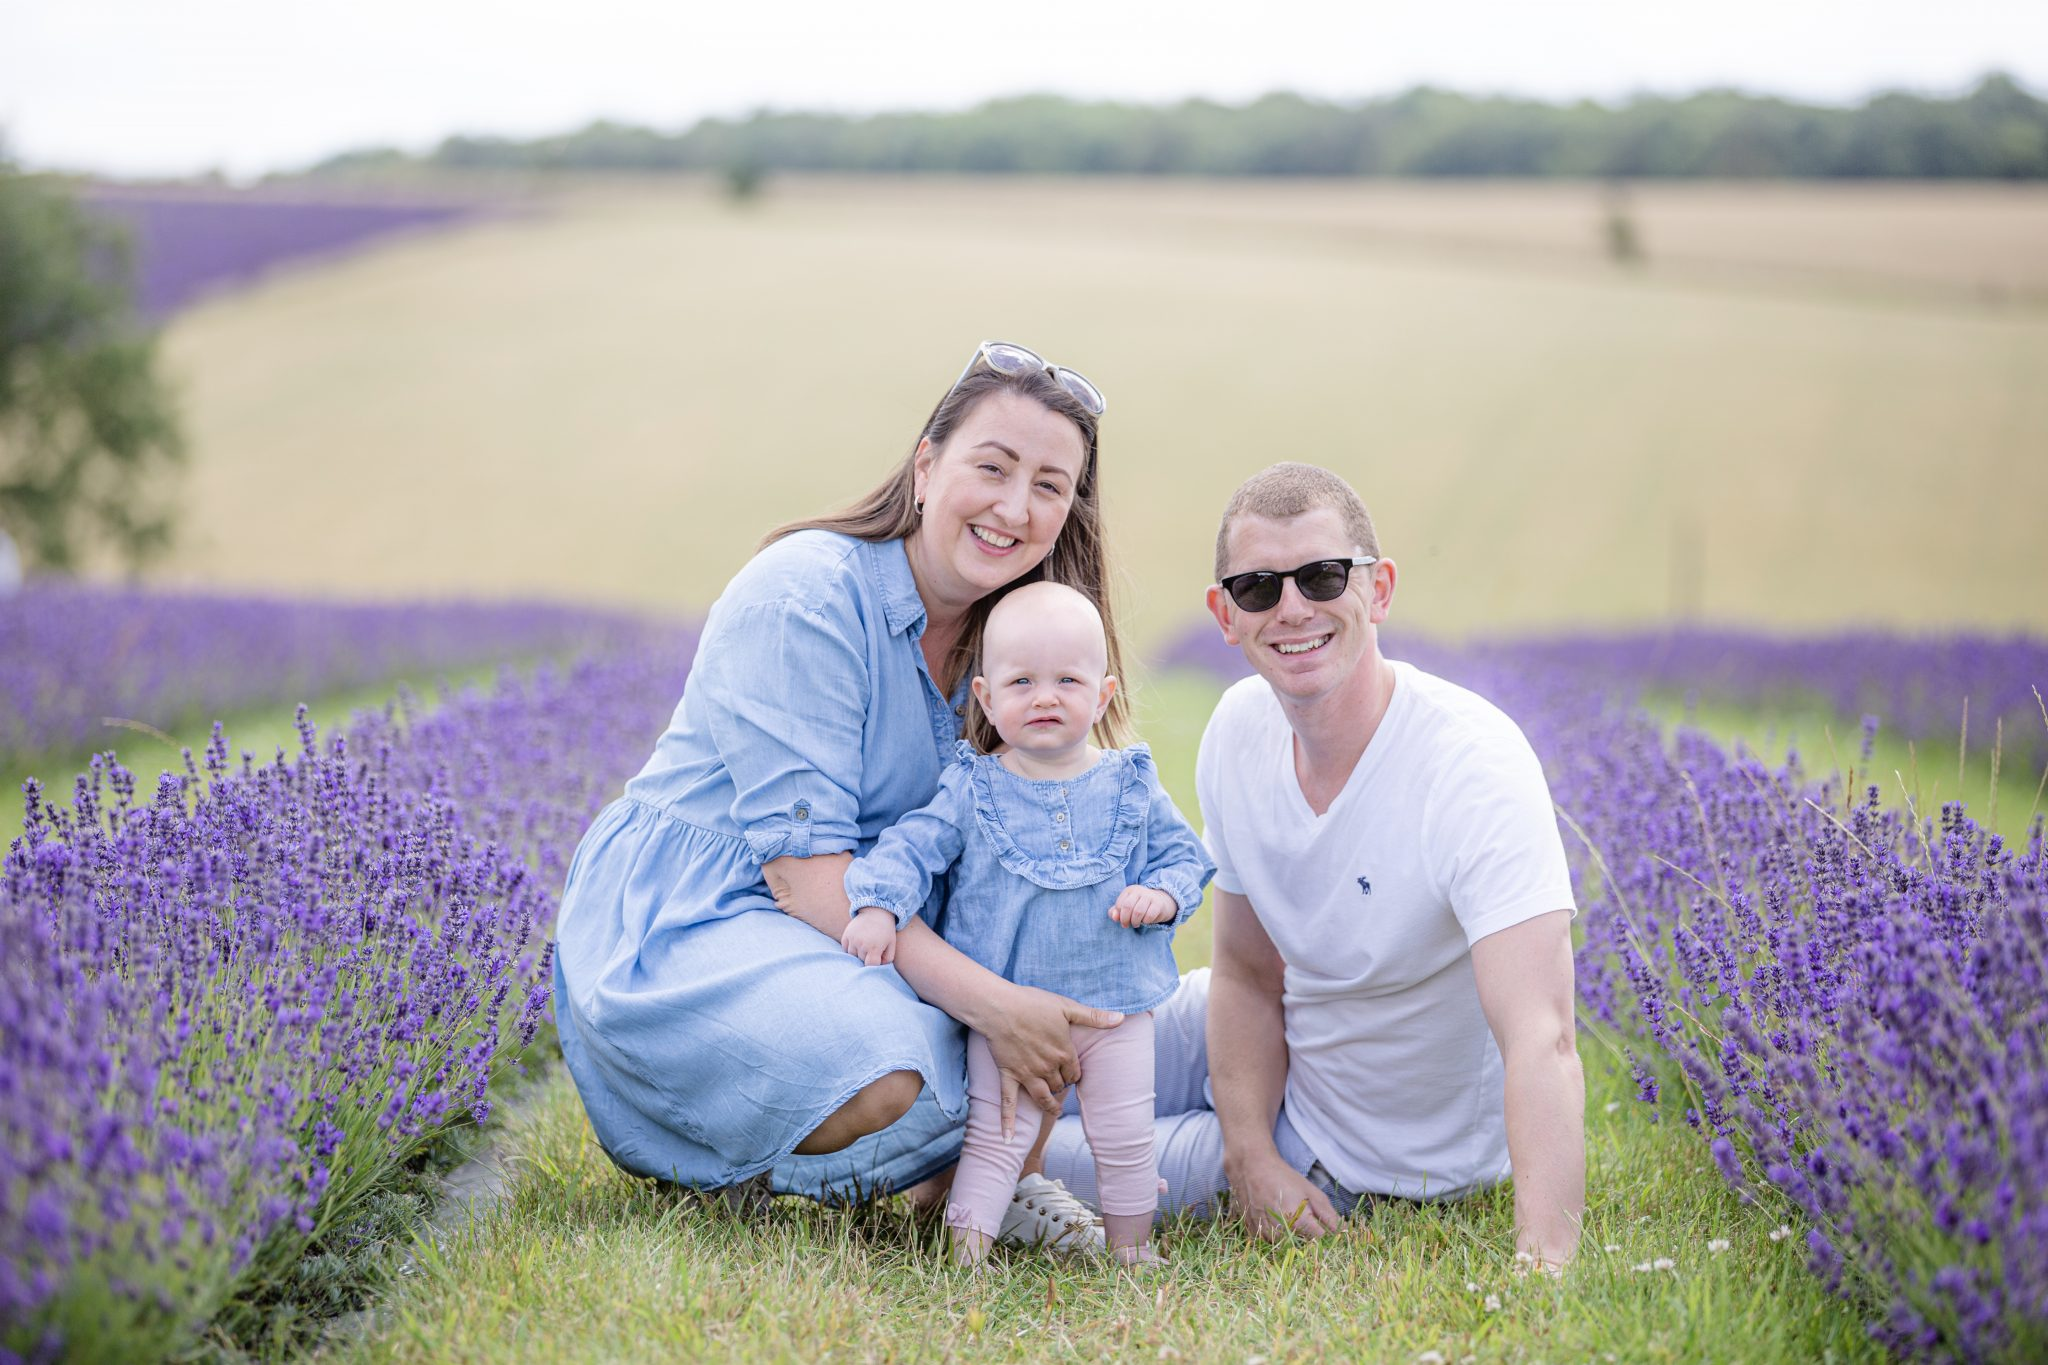 Family Portrait Shoot at The Lavender Fields